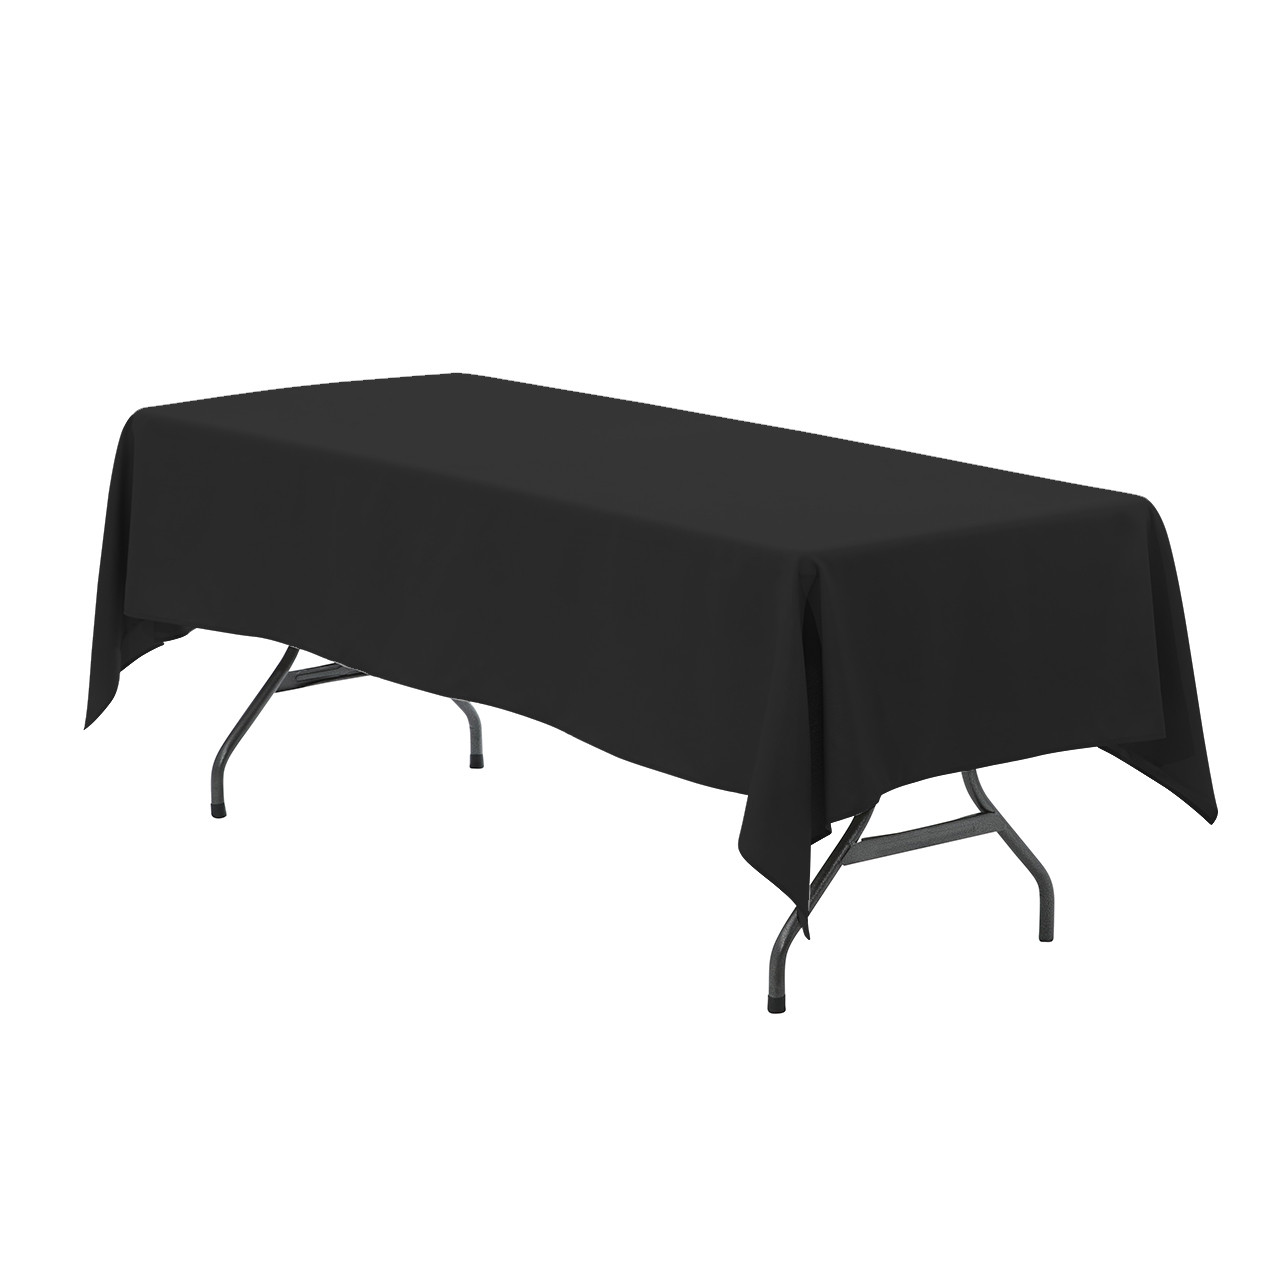 60 x 102 inch Rectangular Polyester Tablecloth Black ...